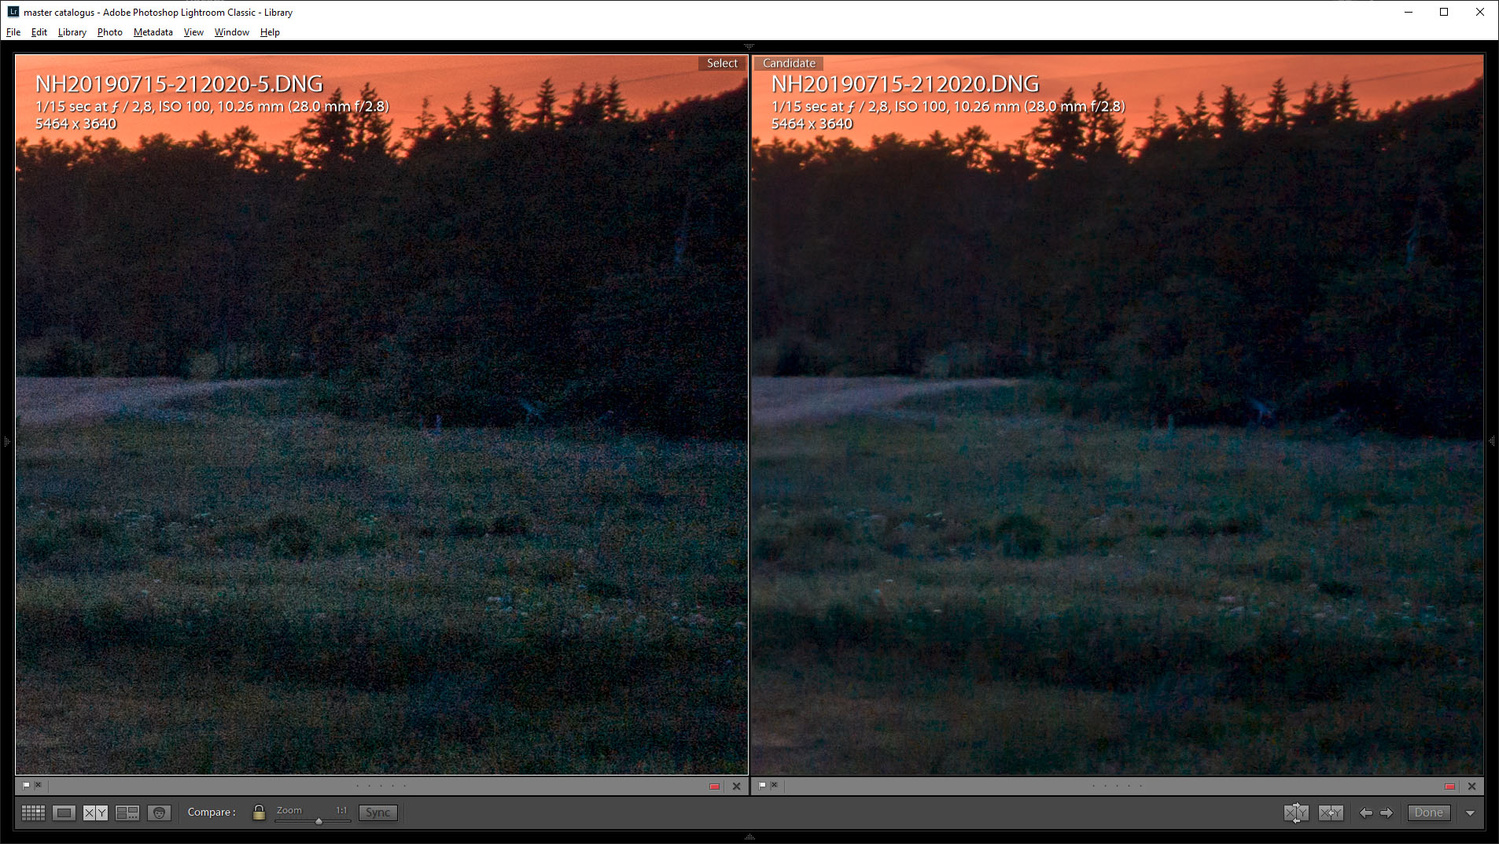 After post-processing a lot of noise is visible (left image). By reducing noise too much details are lost. This is not what we want. By stacking multiple images we can reduce noise and keep the details.